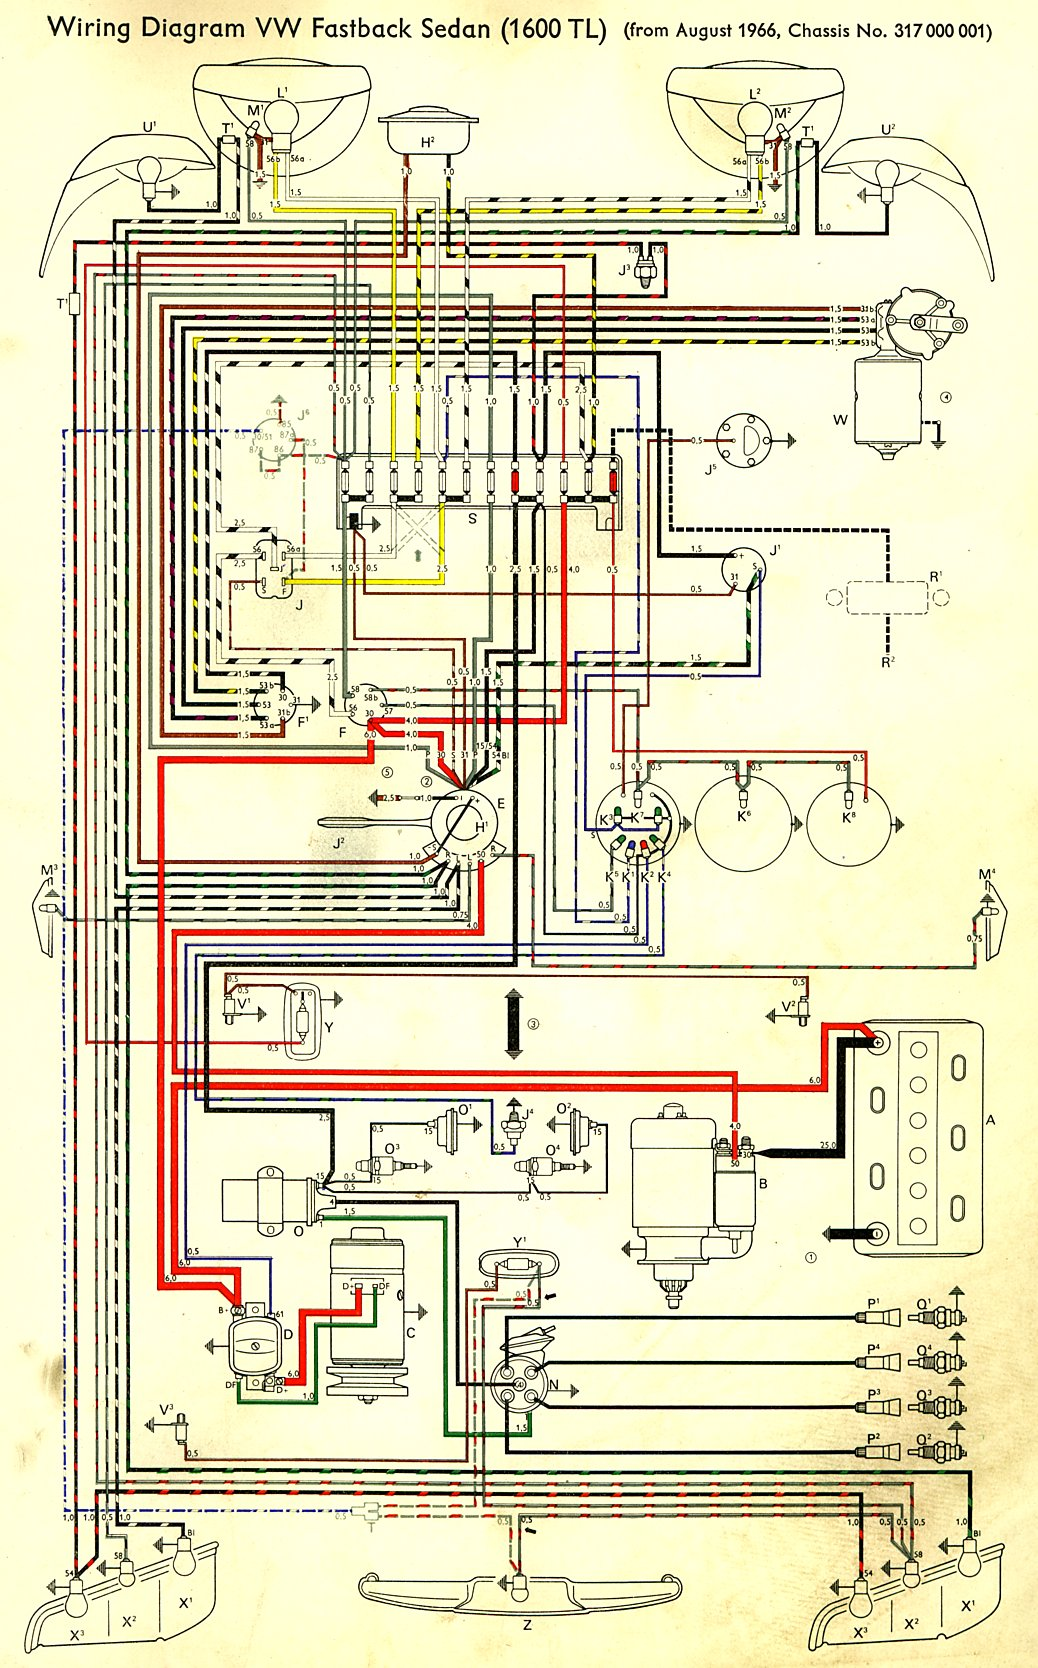 type3_1600TL_67 european wiring diagram hyundai sonata wiring diagram \u2022 free vw wiring diagram symbols at gsmx.co